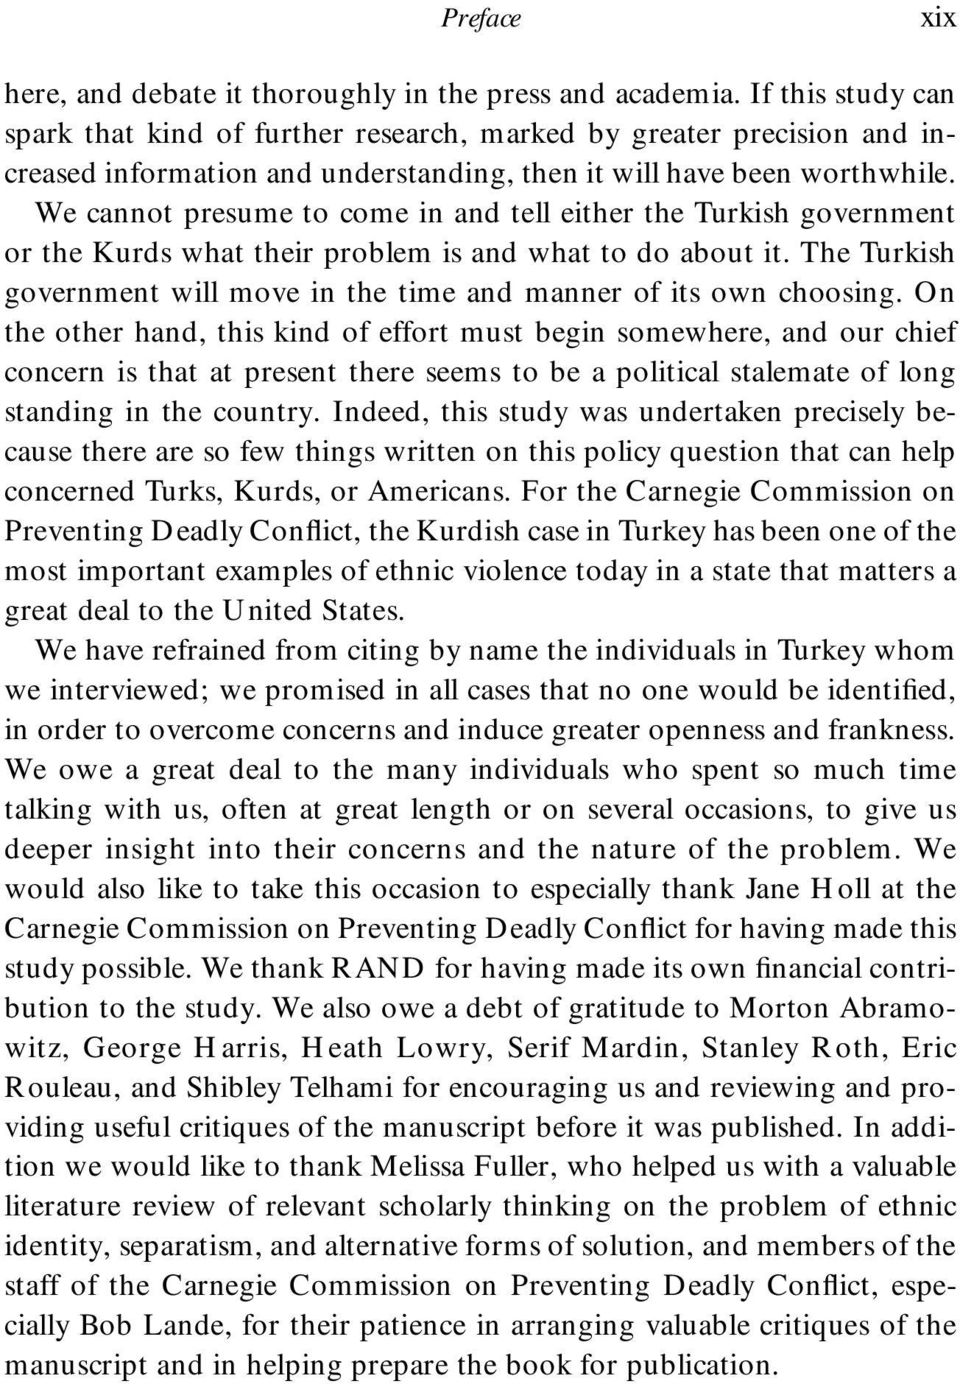 We cannot presume to come in and tell either the Turkish government or the Kurds what their problem is and what to do about it.